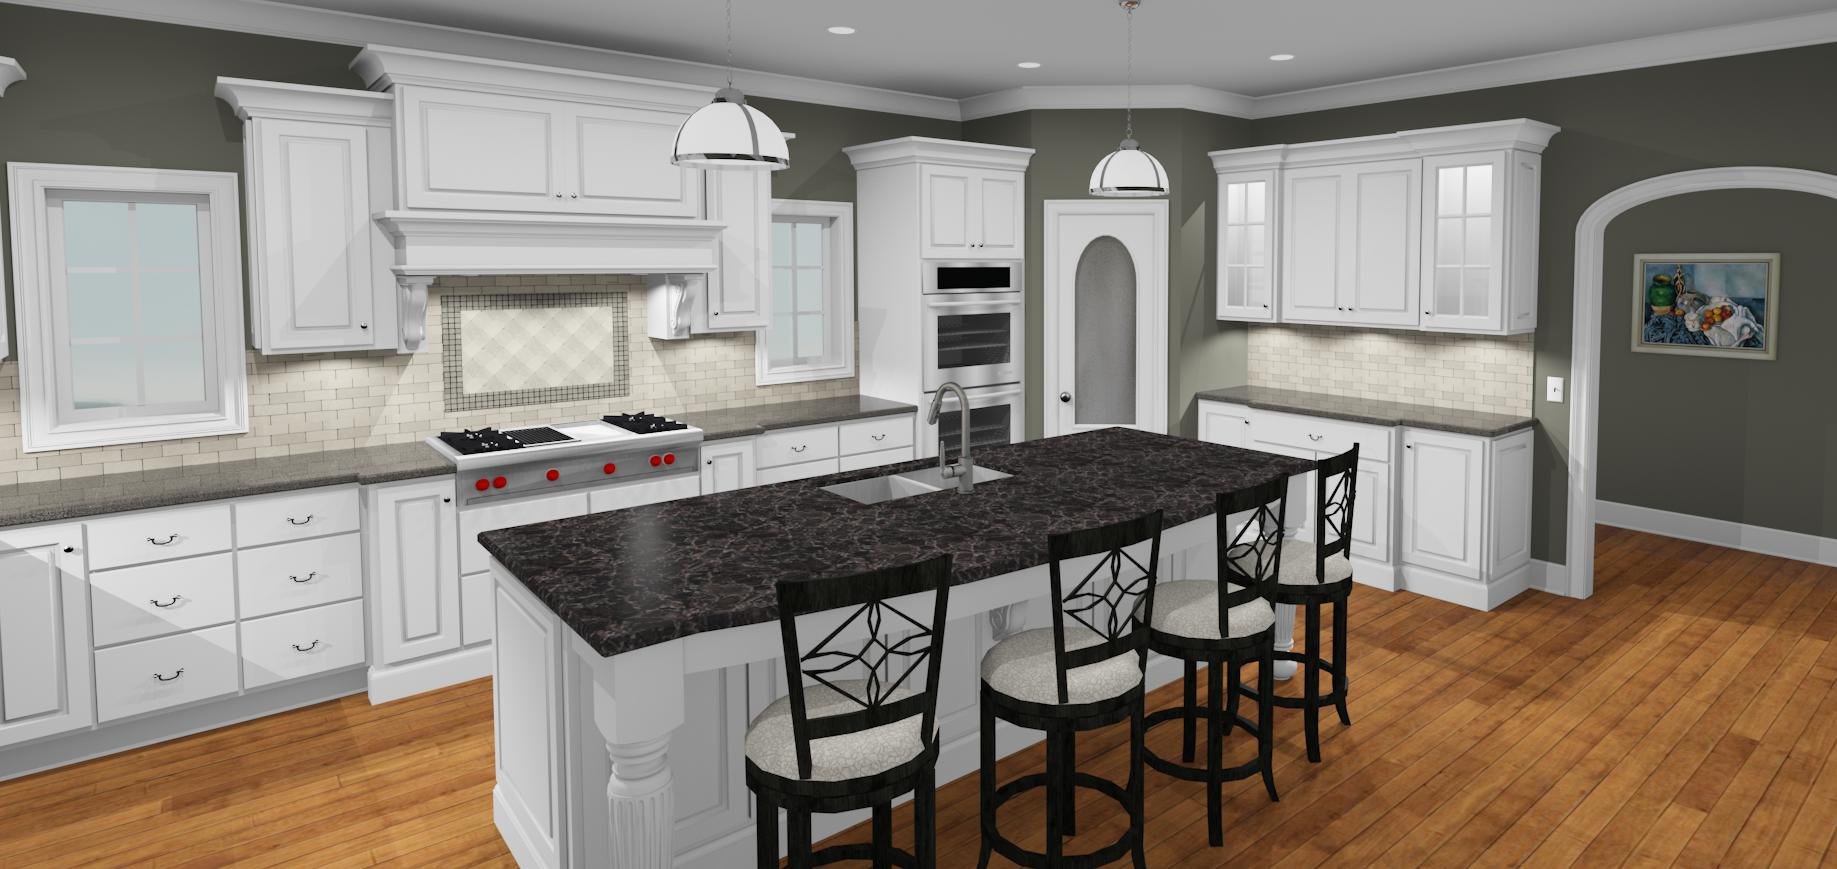 Gray white kitchen interior design ideas of kitchen Gray and white kitchen ideas